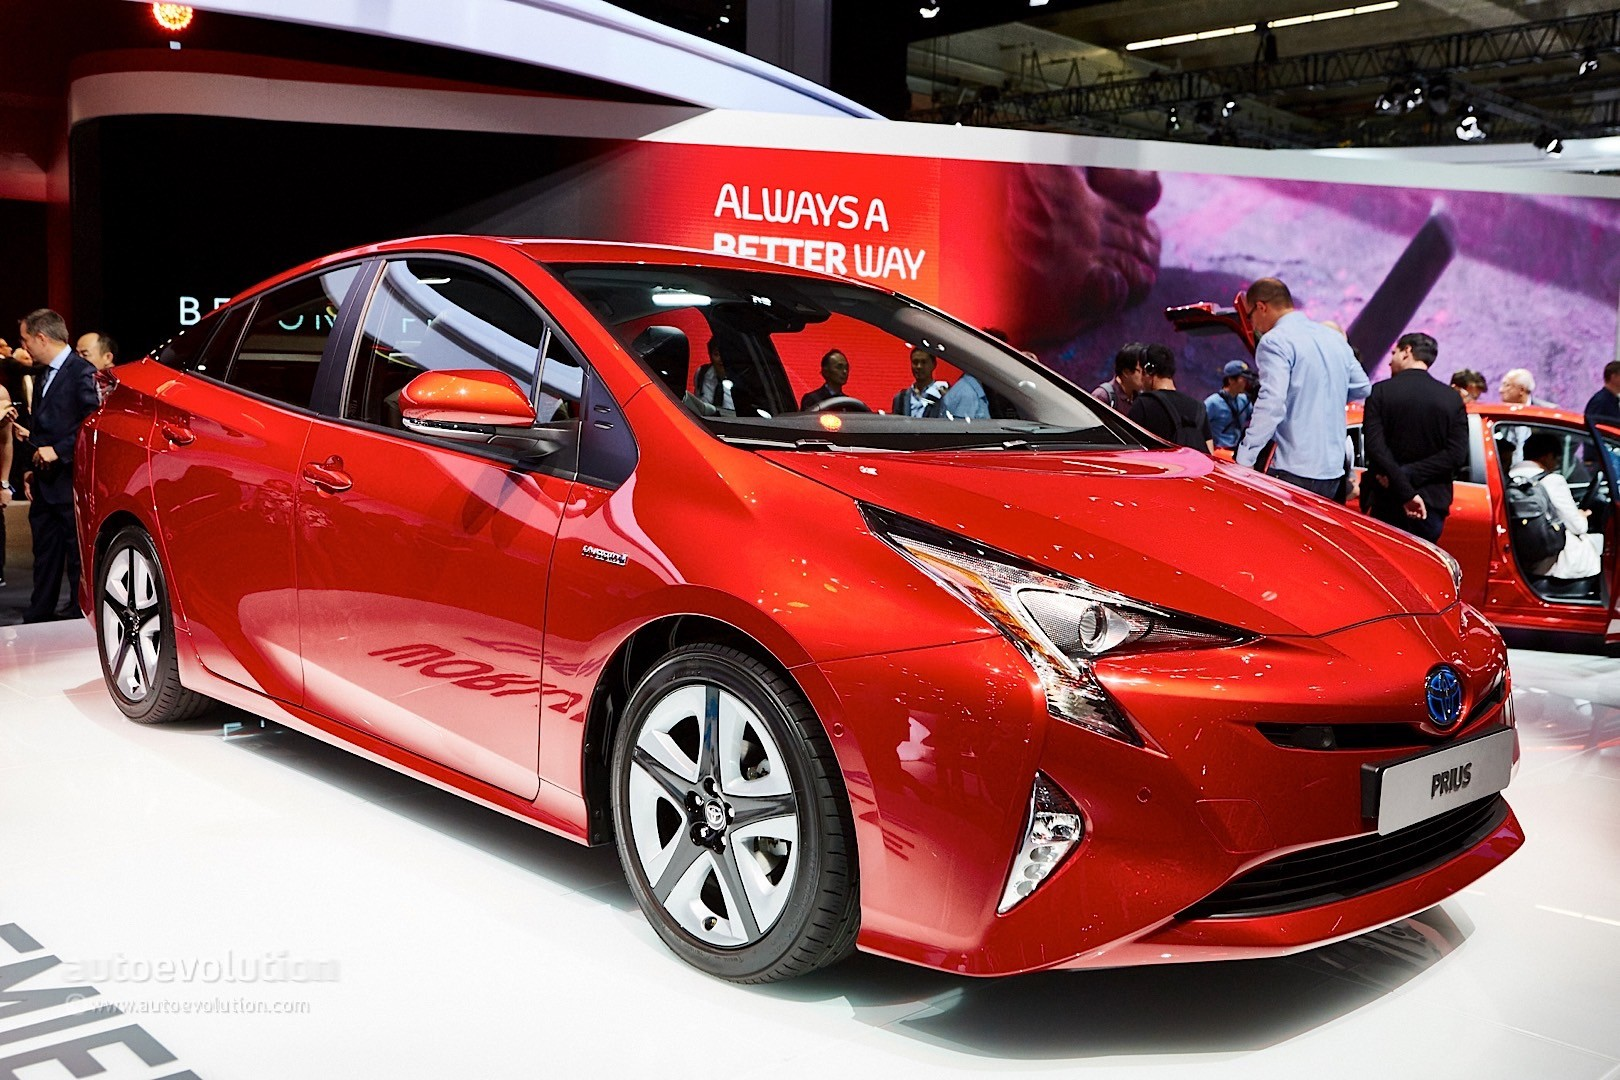 toyota prius recalled over parking brake problem yes the new prius autoevolution. Black Bedroom Furniture Sets. Home Design Ideas